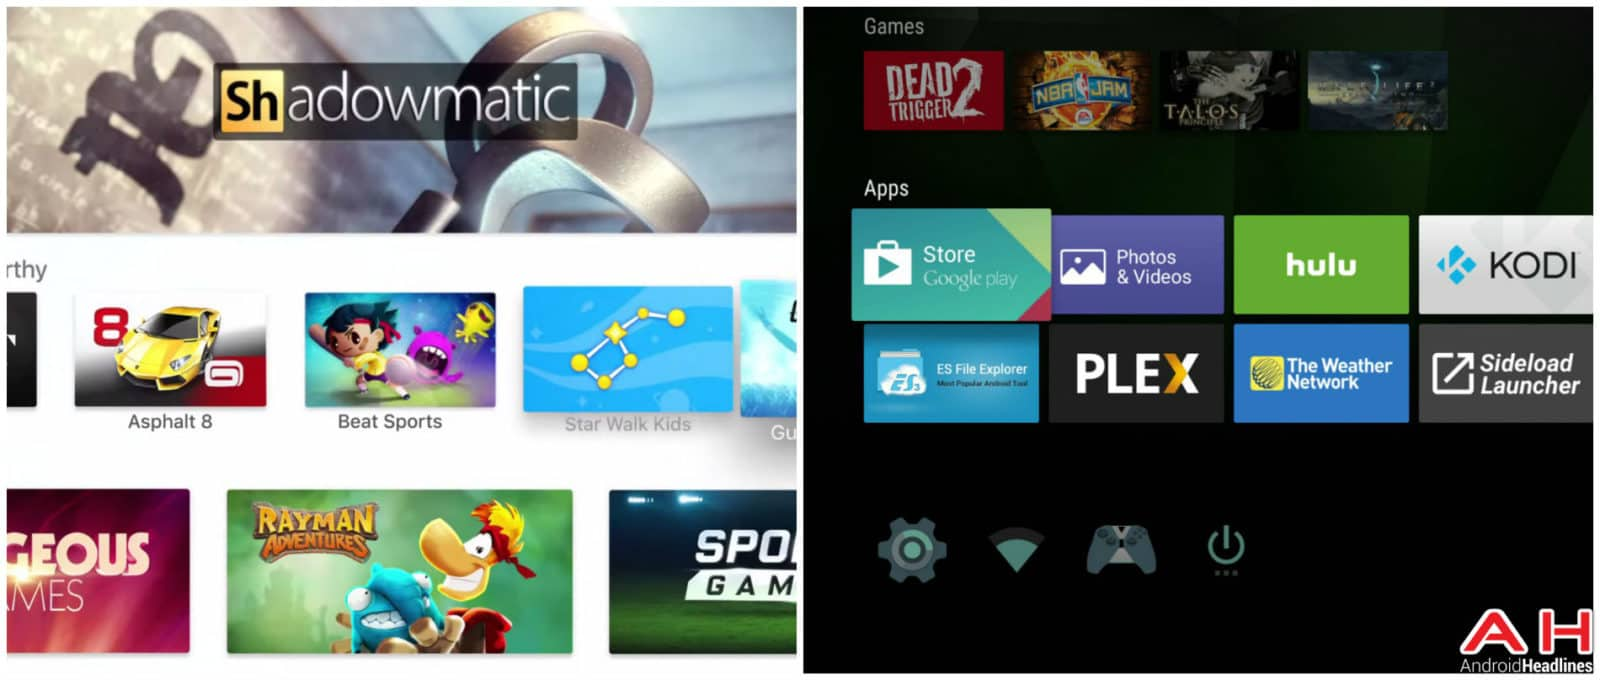 Apple Android TV AH